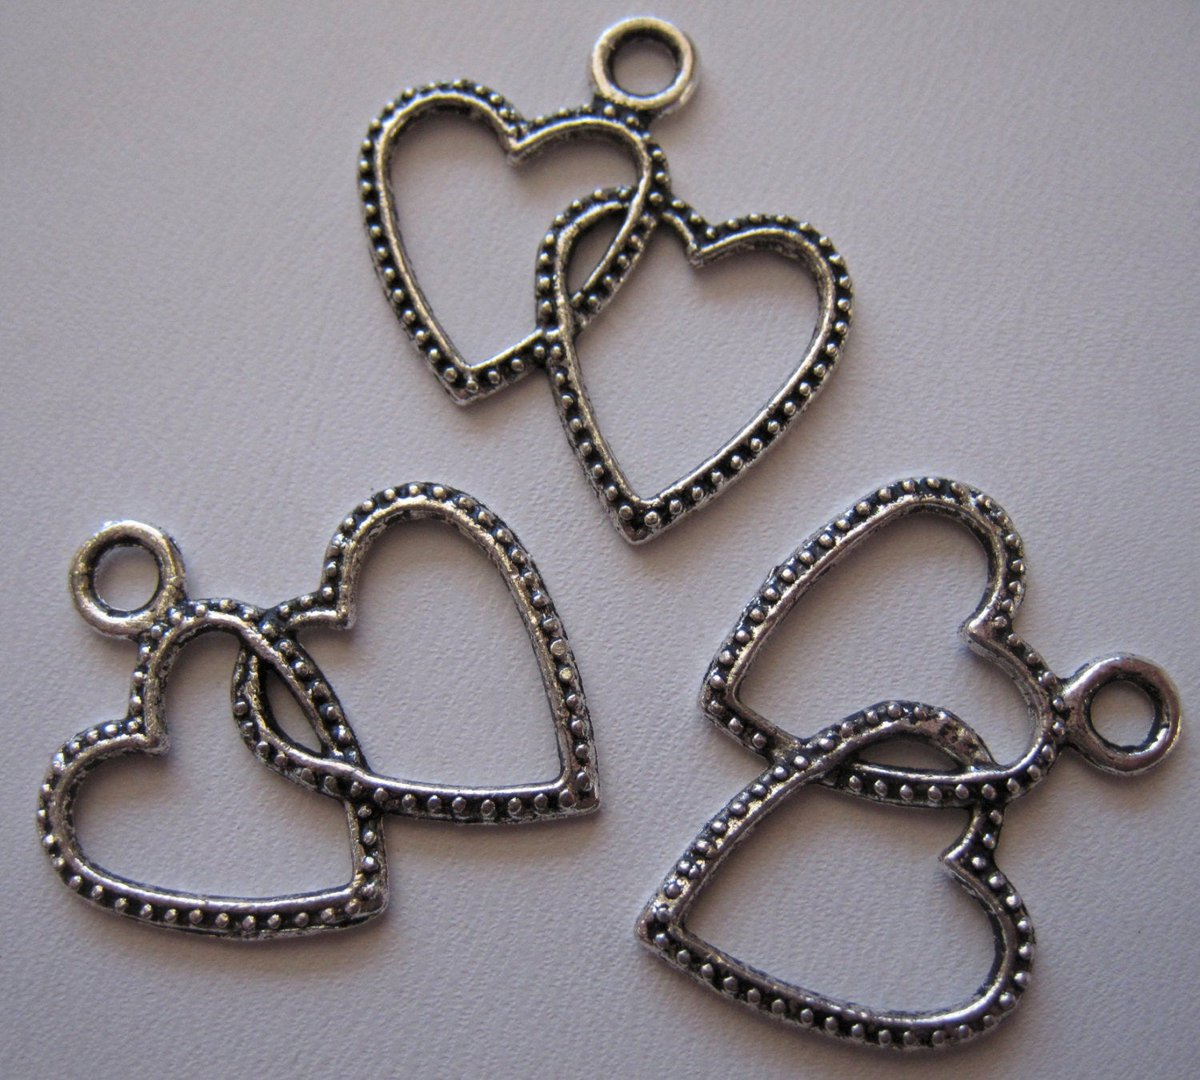 Charms Antique Silver Double Heart Textured 22mm Charms Pendants Findings Jewelry Supplies (Lot of 4) by BySupply  #bysupply #Etsy #HeartPendant